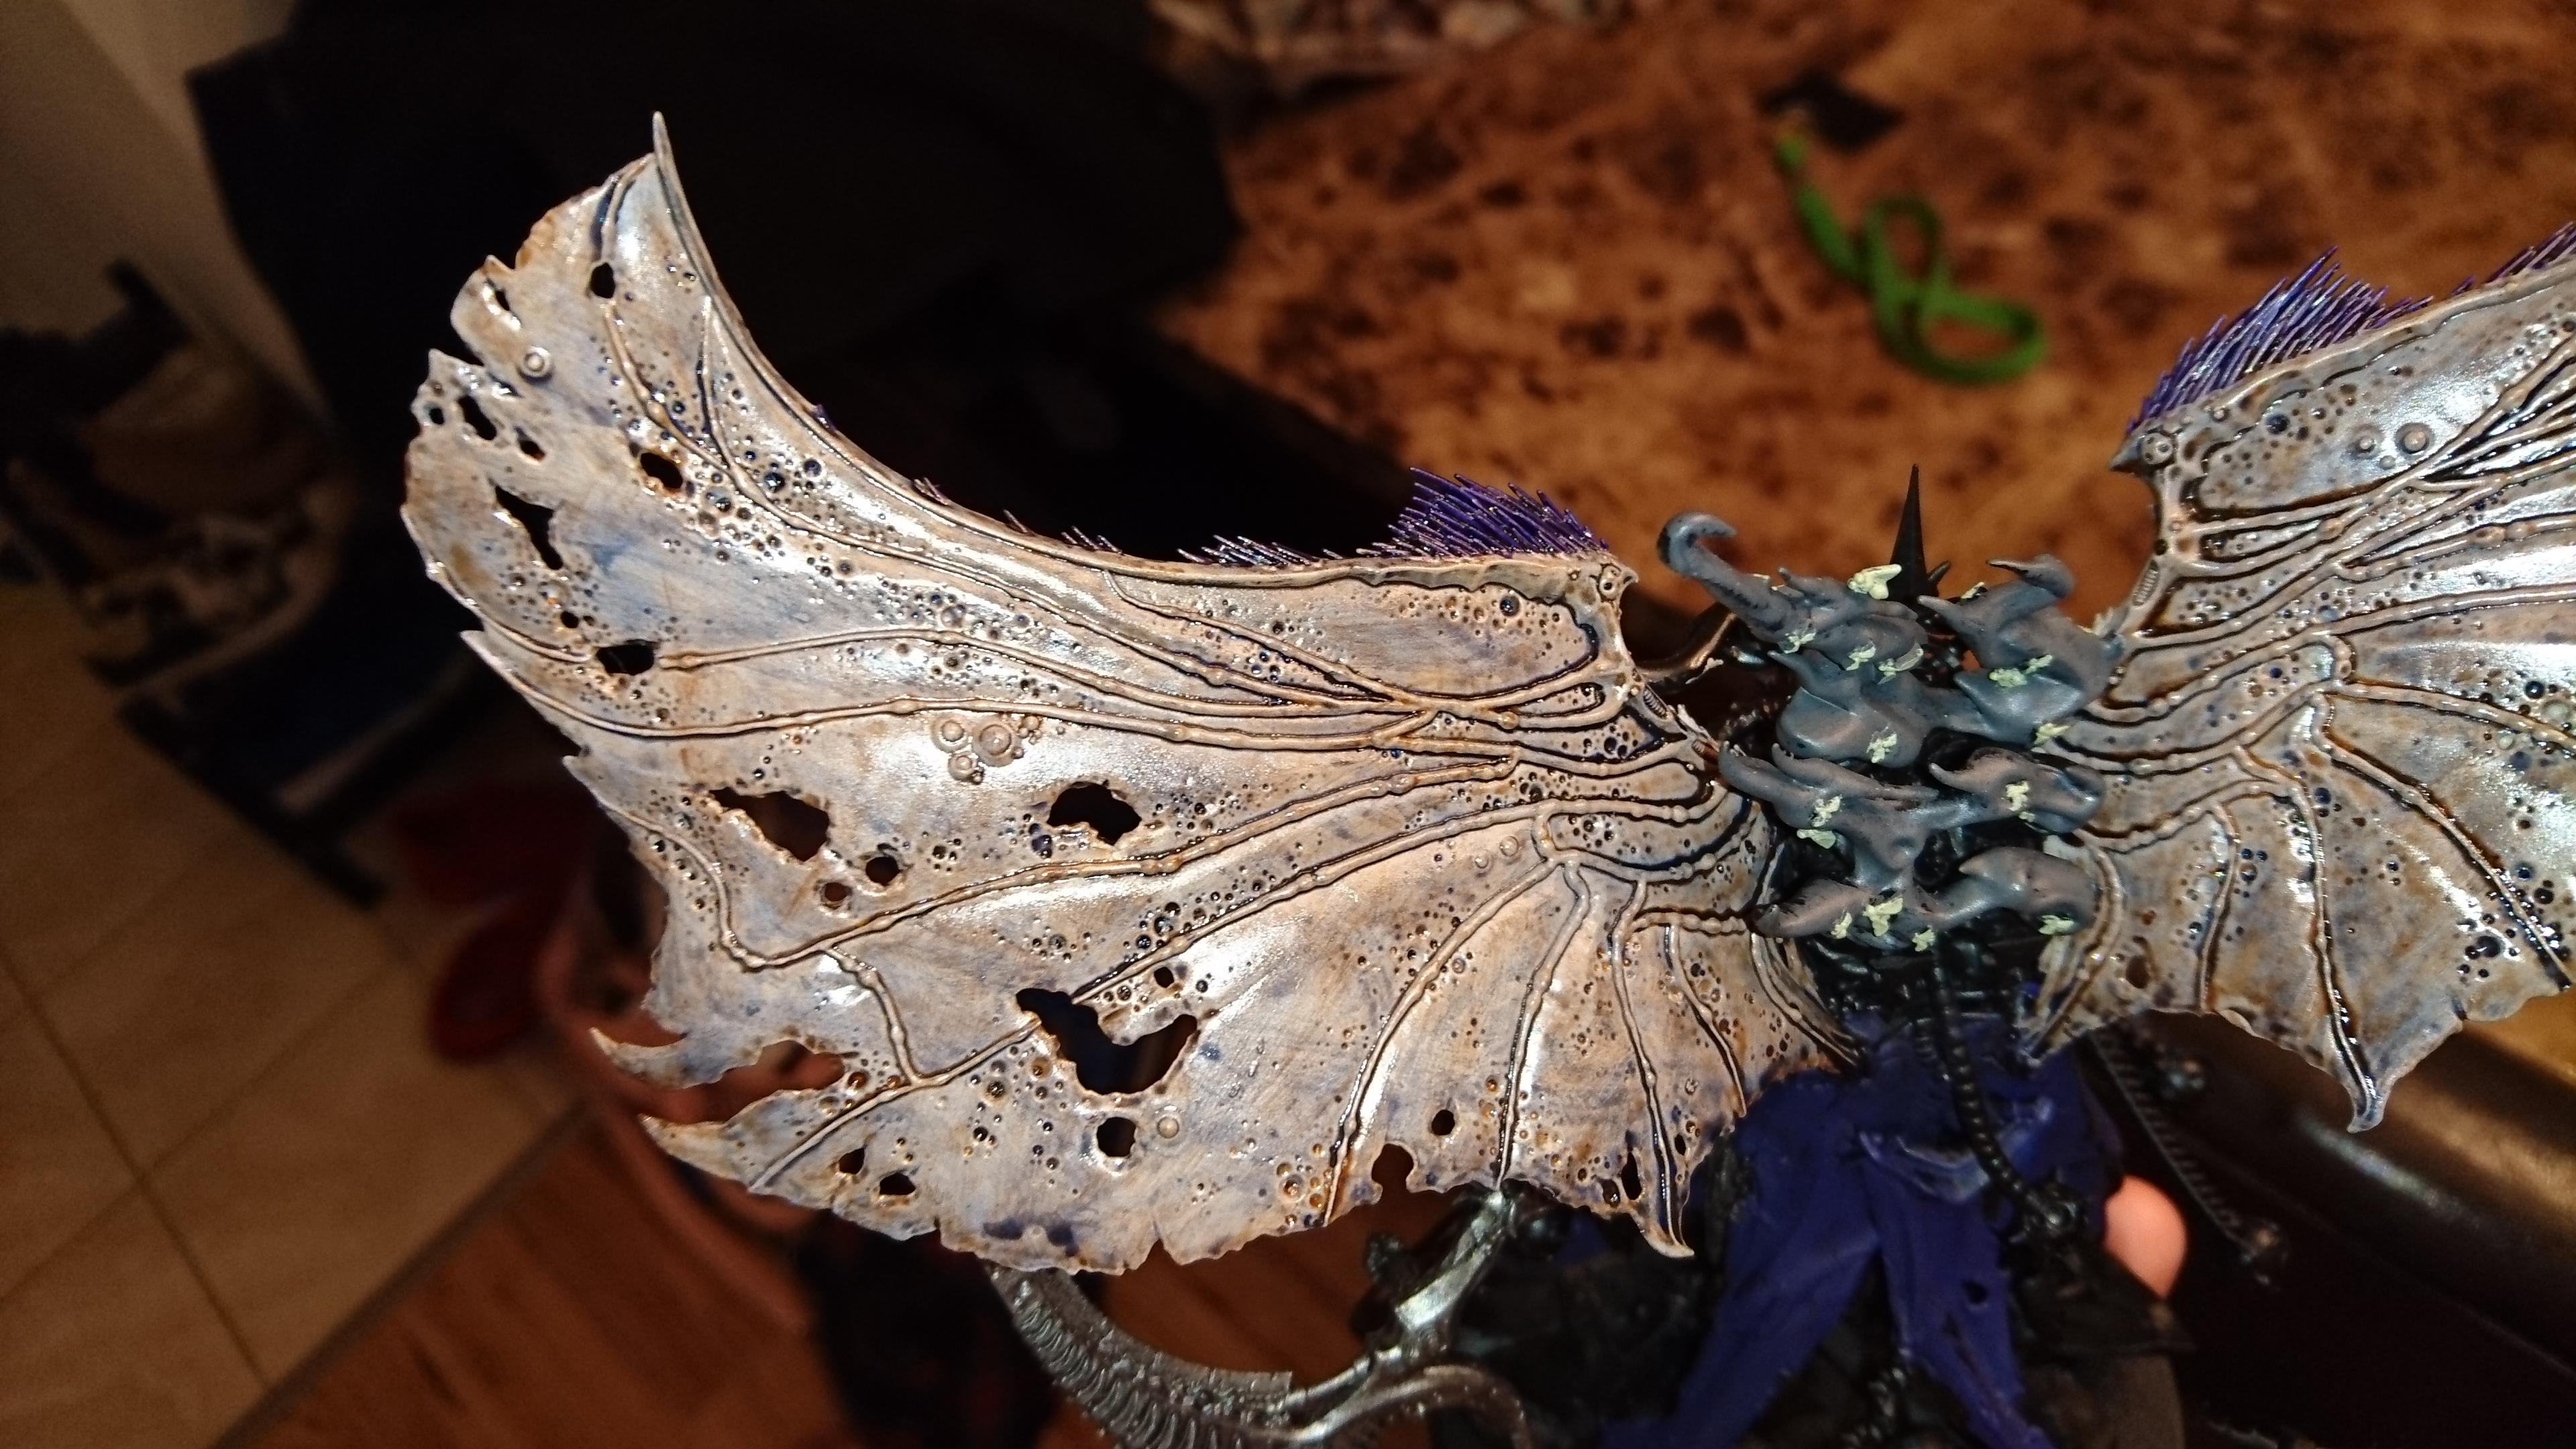 Mortarion, Motarion, Winged, Work In Progress